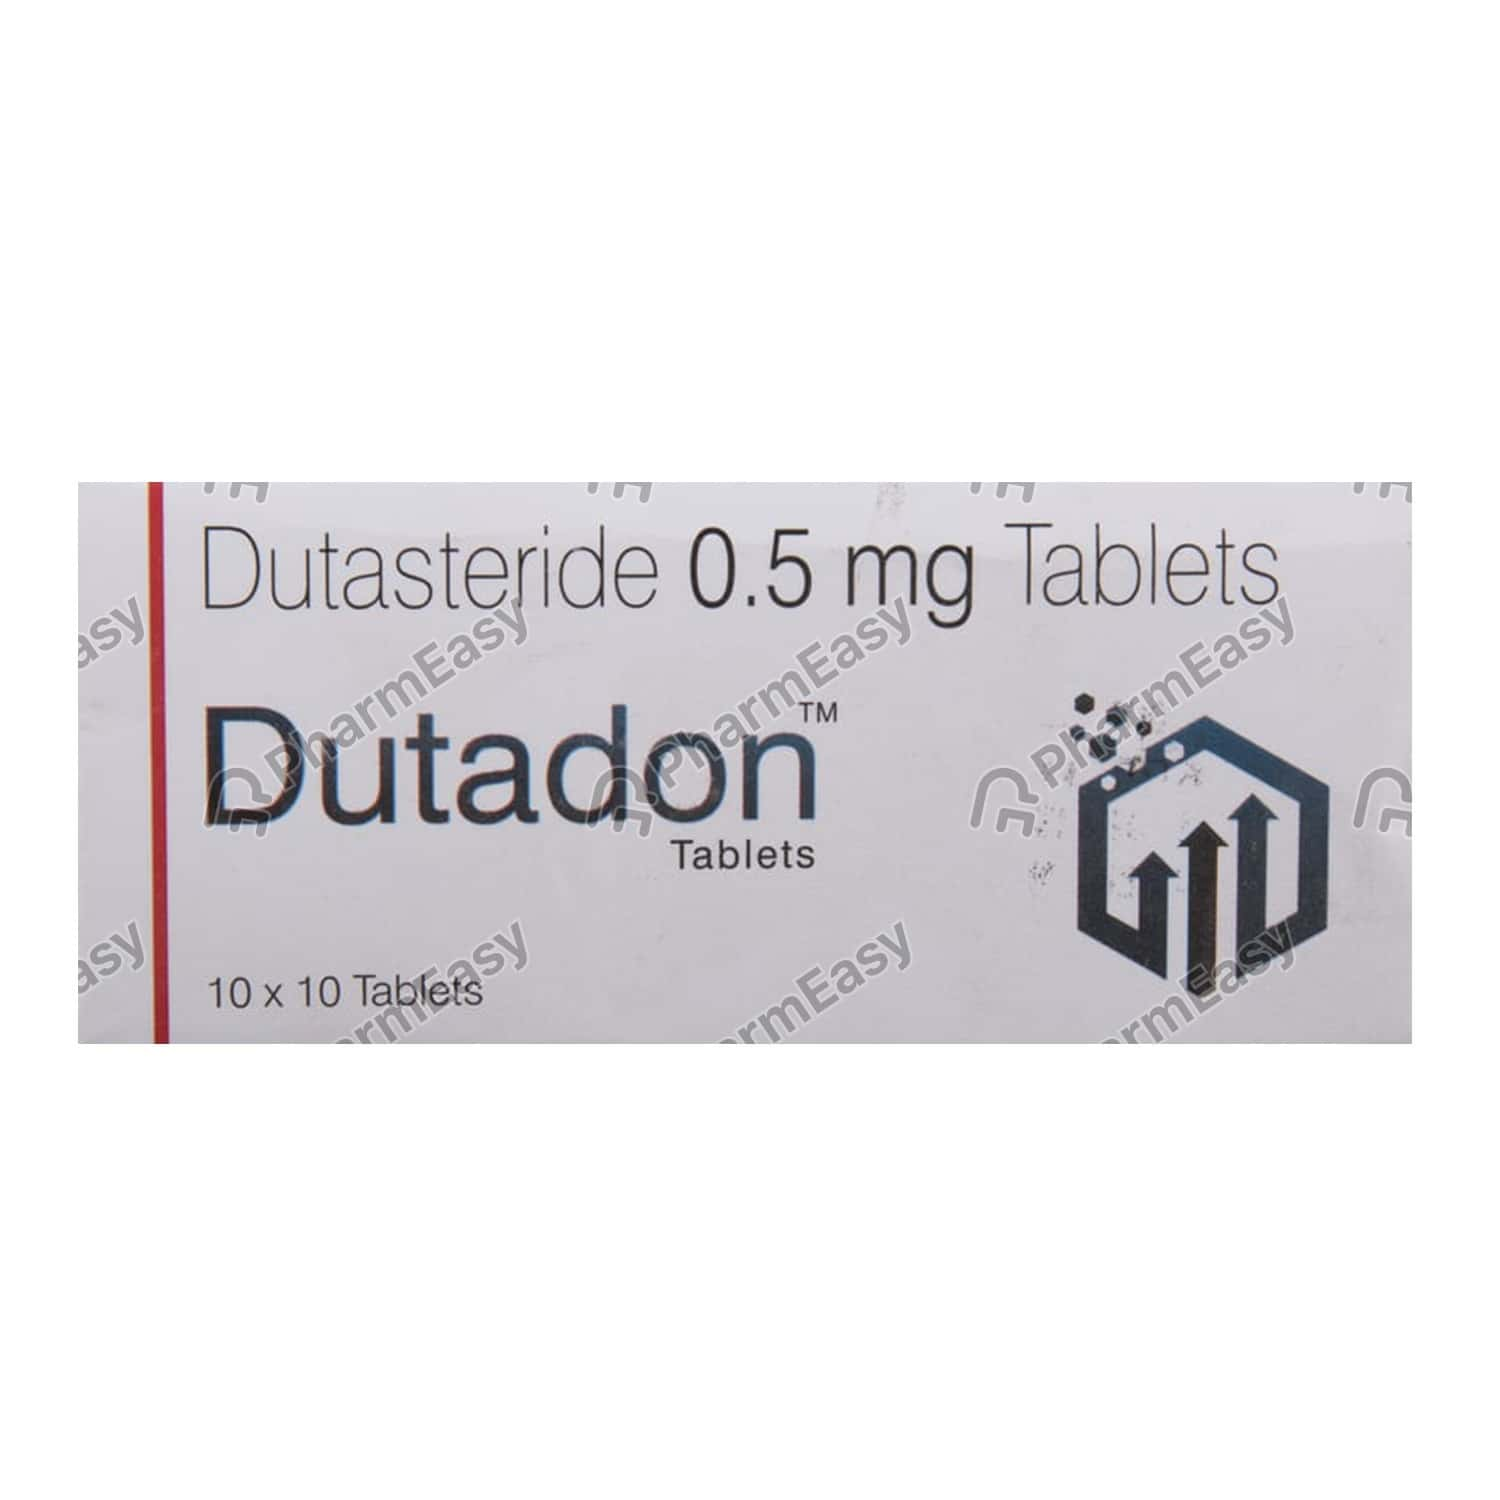 Dutaone 0.5mg Strip Of 10 Tablets